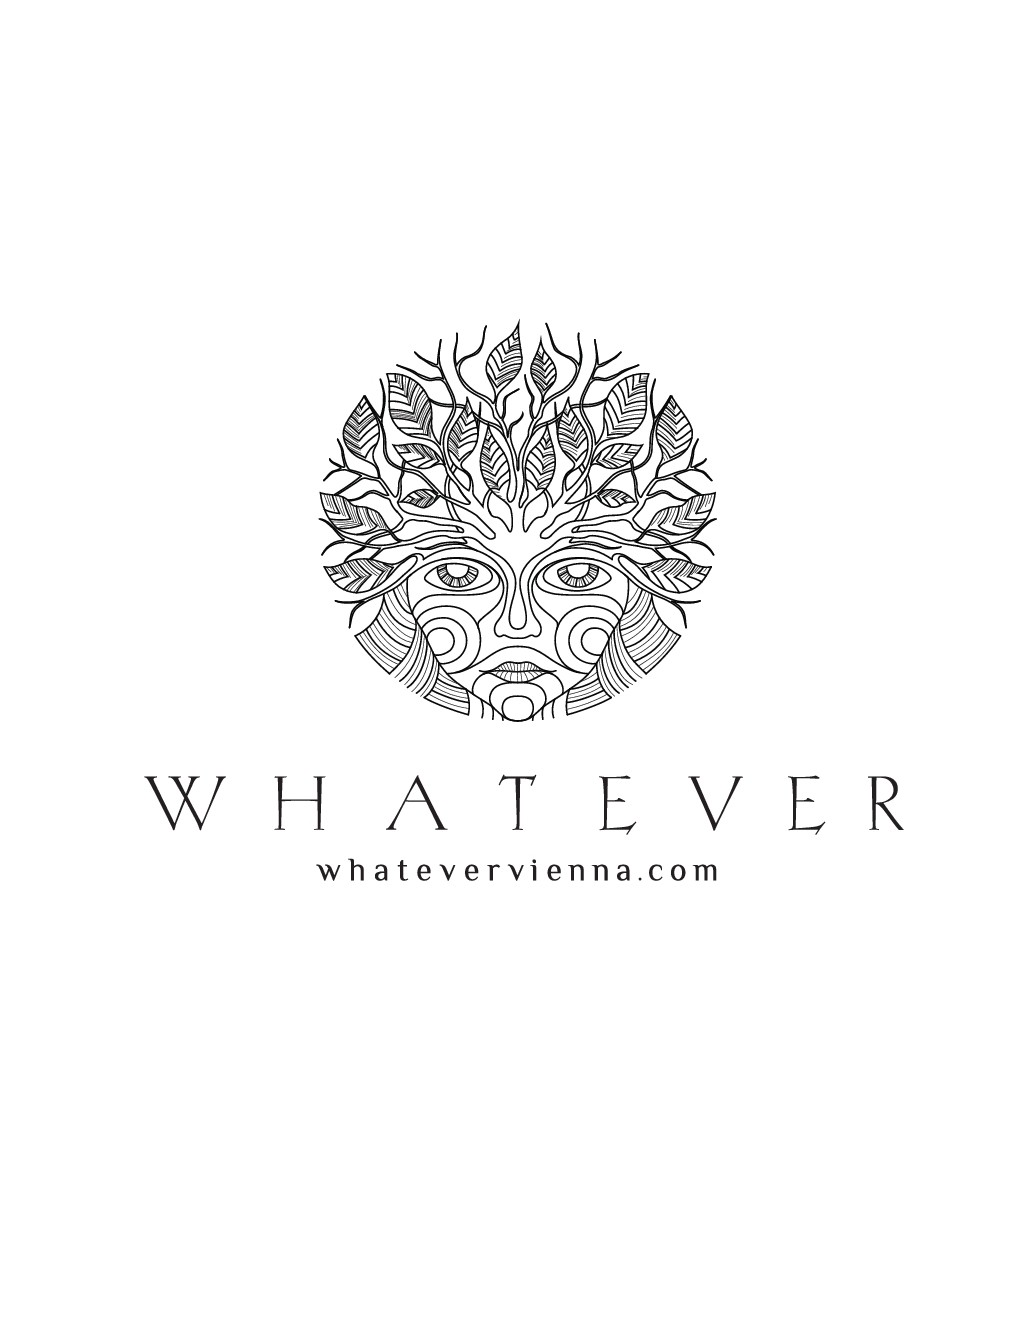 LOGO-DESIGN please ---> WHATEVER <--- shop is placed in Vienna; we do Nature(herbs),Handpans(godan)+Vaporizer(dynavap)